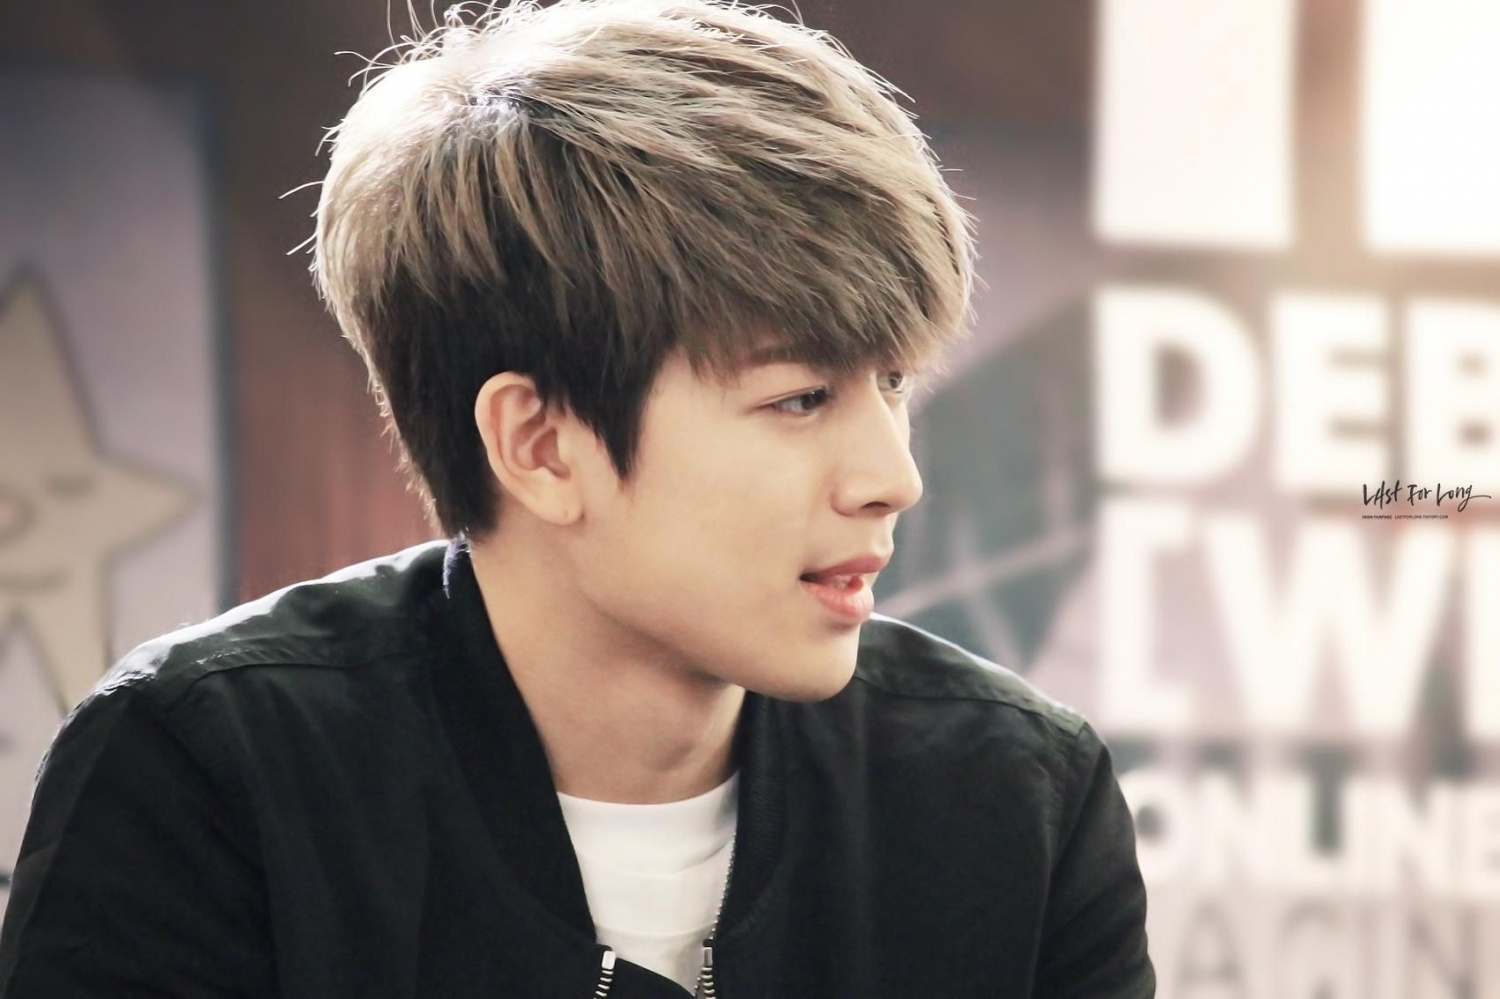 Top 3 Iconic Hairstyles of K-Pop Idols to Inspire Your Next Hairdo